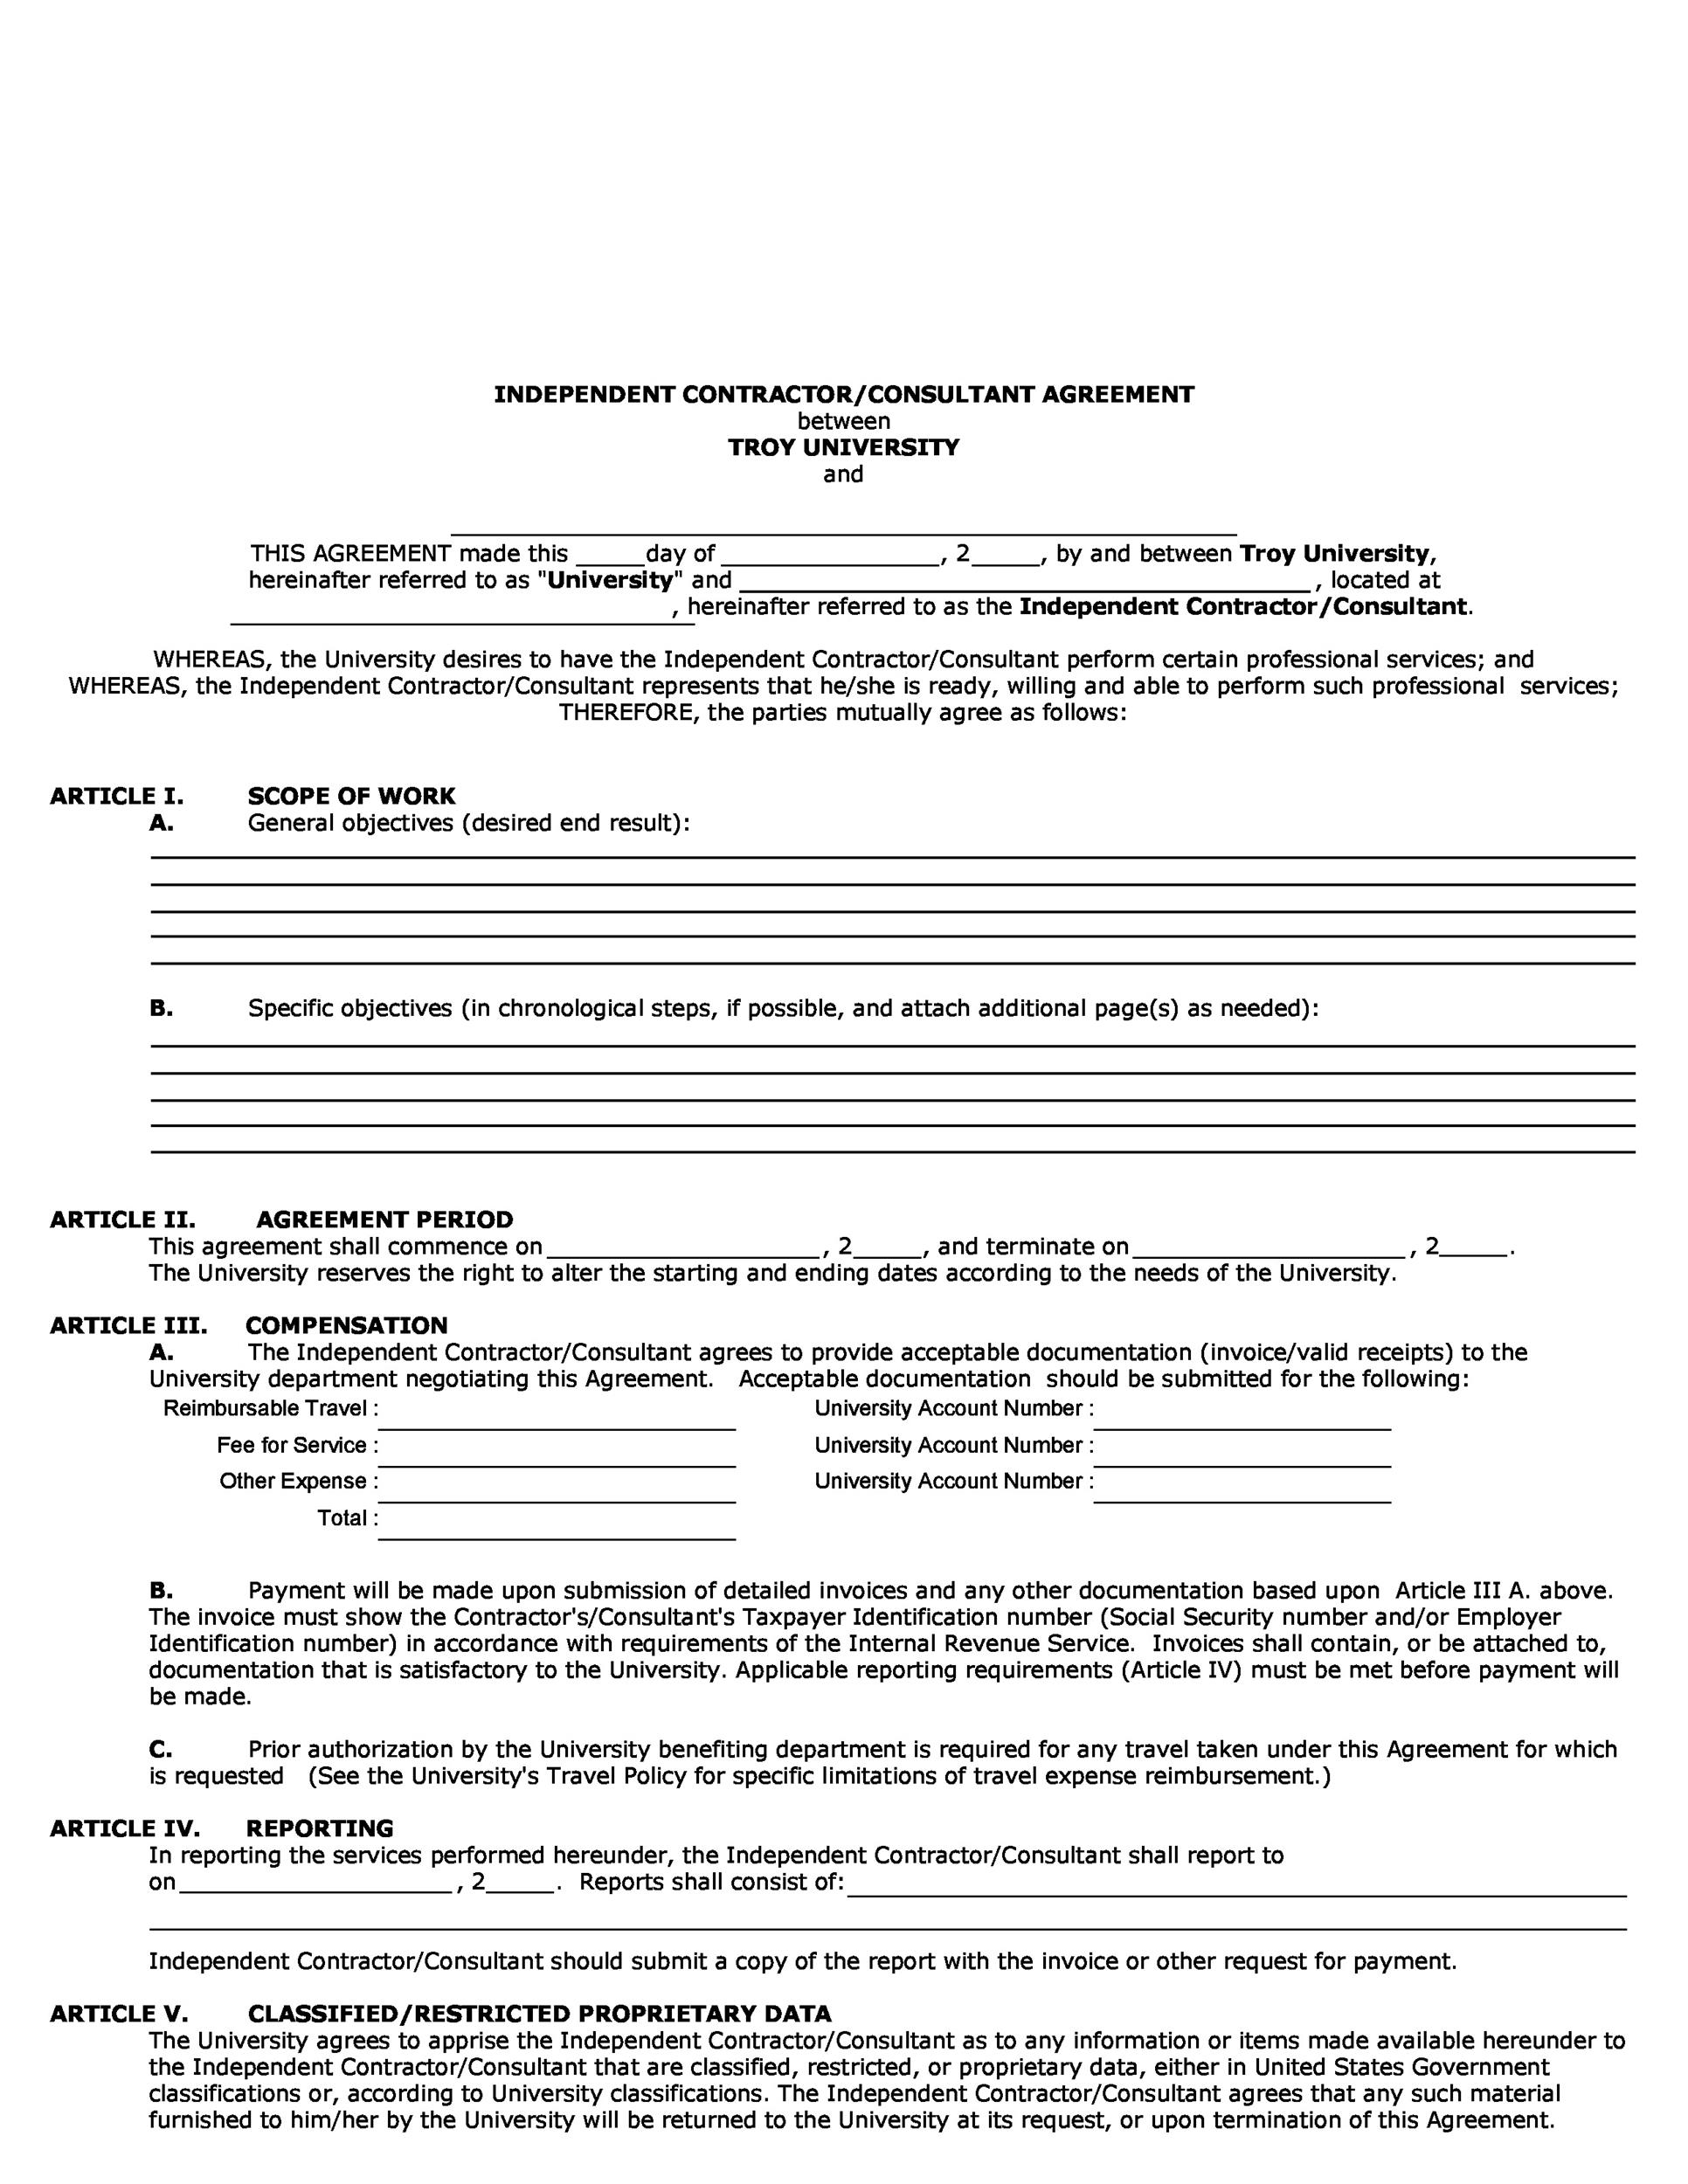 independent contractor agreement 42